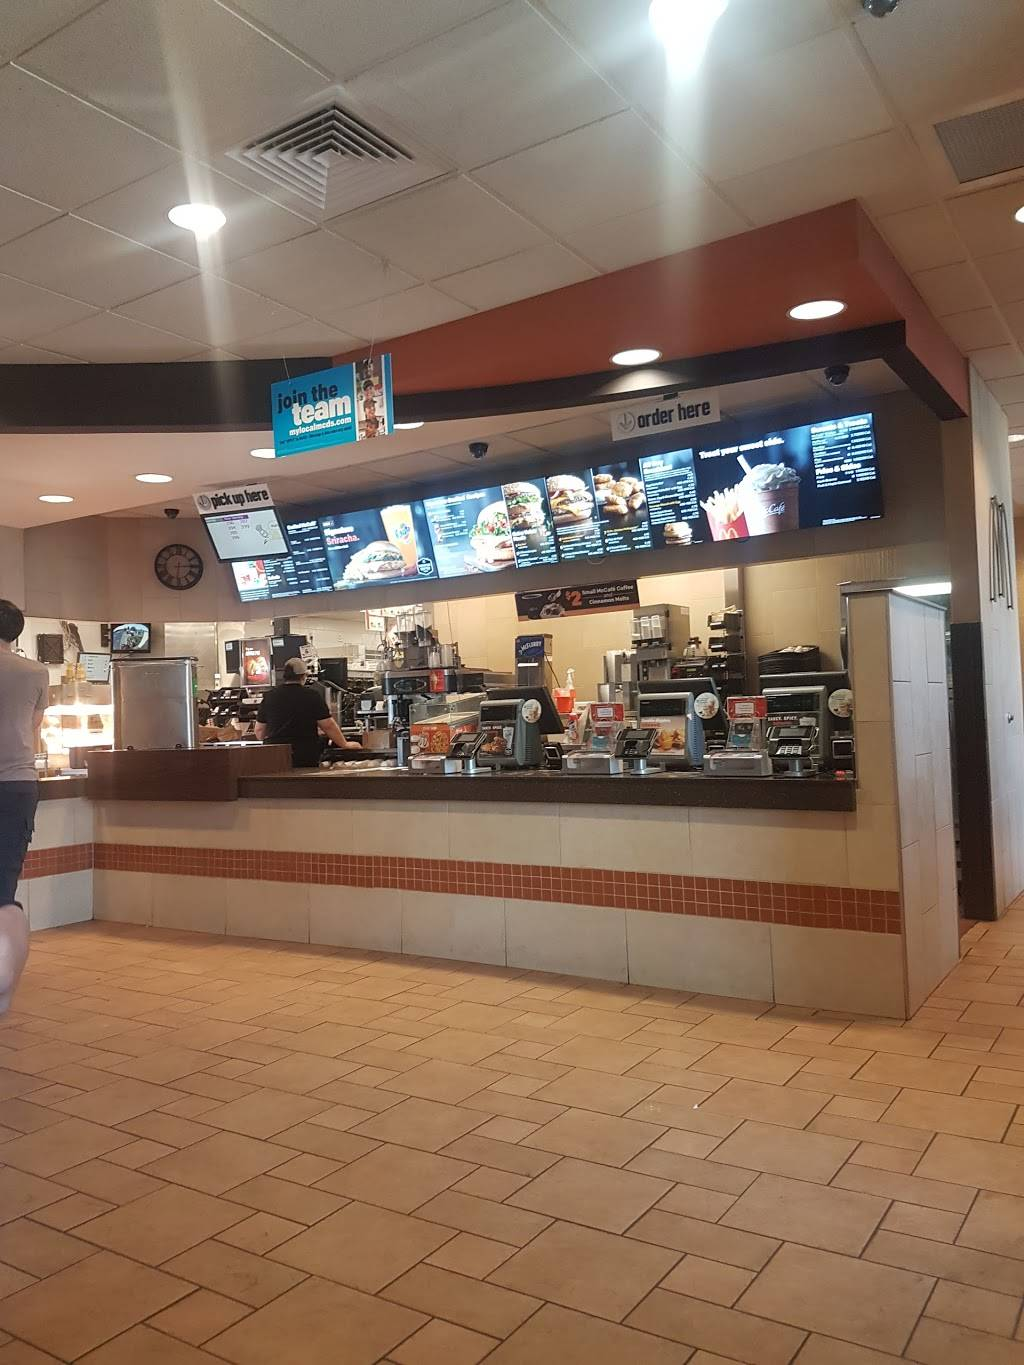 McDonalds - cafe  | Photo 3 of 8 | Address: 835 Lime City Rd, Rossford, OH 43460, USA | Phone: (419) 666-7575